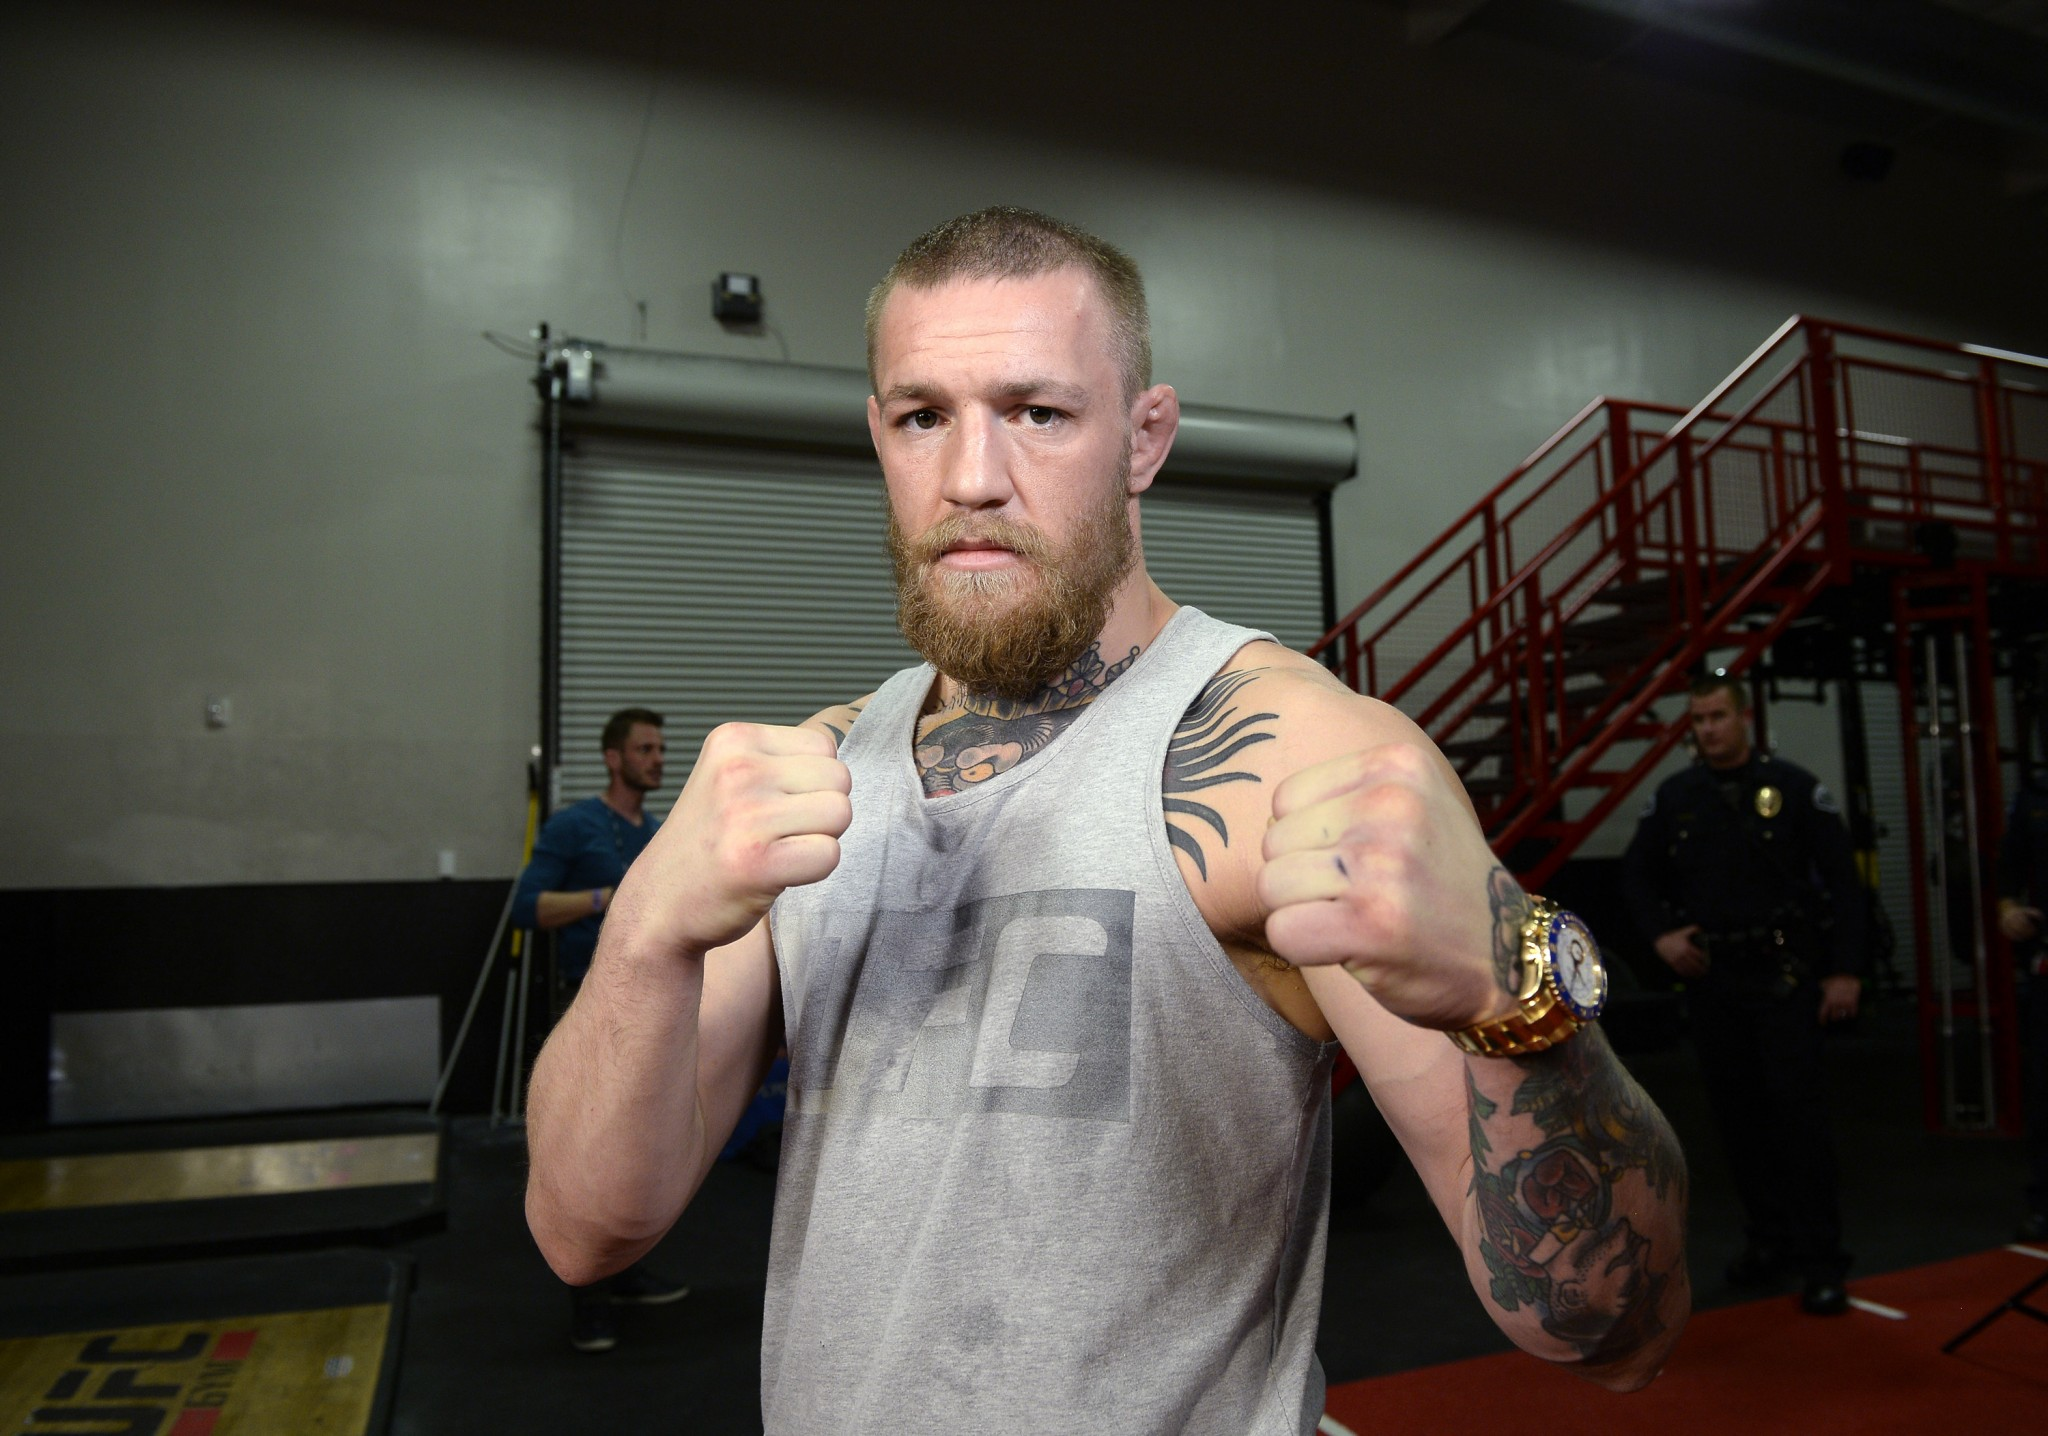 Conor McGregor faces fresh steroid abuse claims